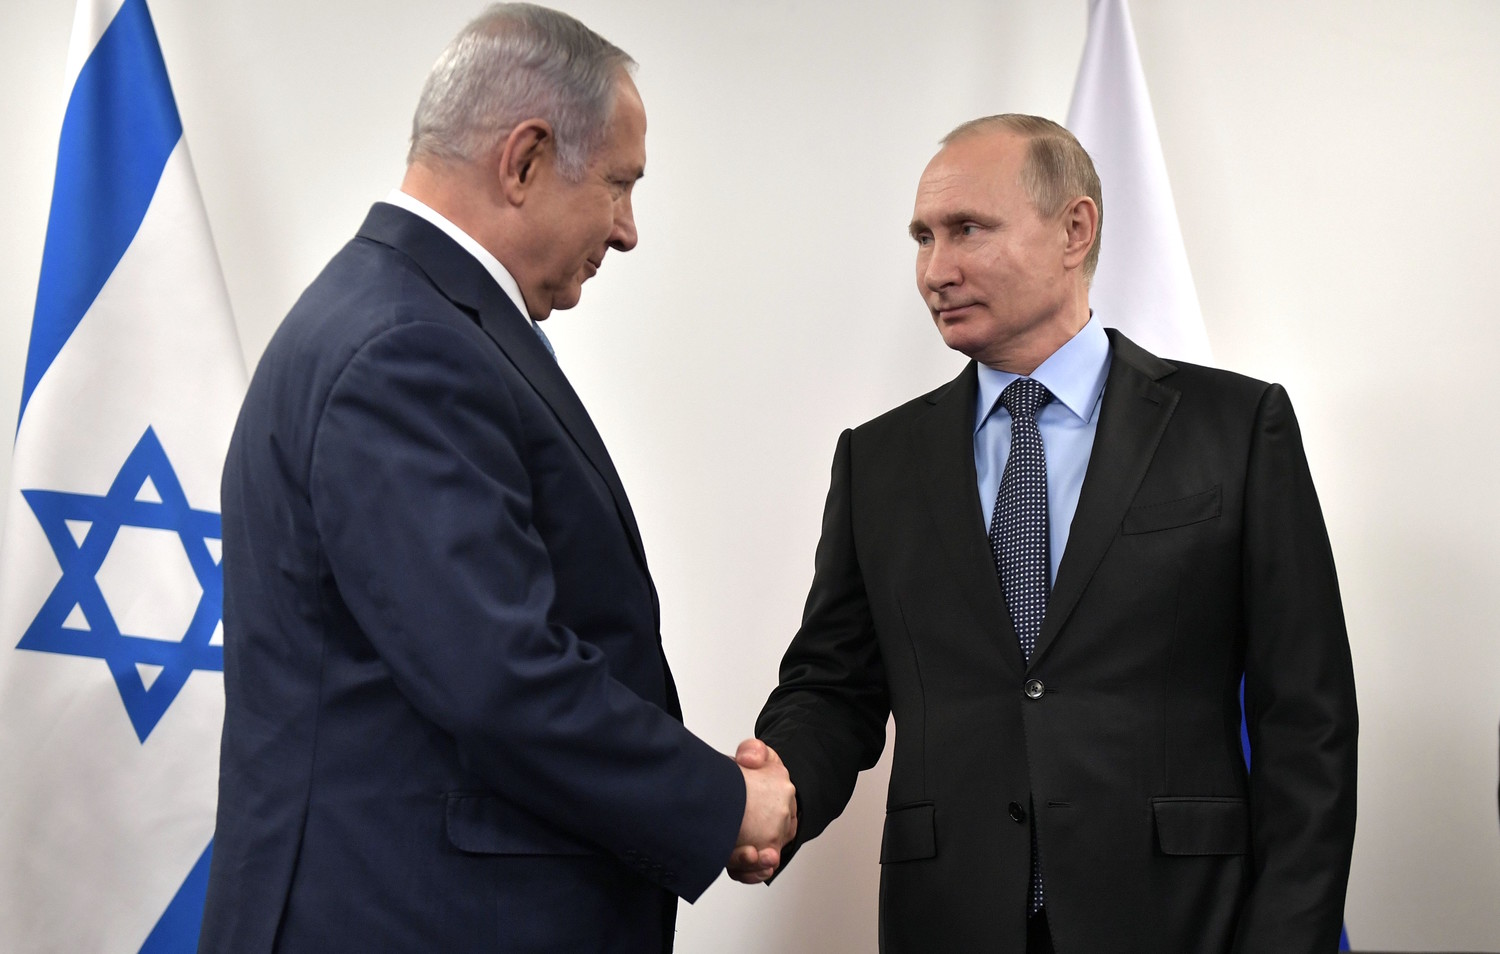 Why Putin Loves Israel It S His Drive To Make Russia Great Again The Jewish Star Www Thejewishstar Com